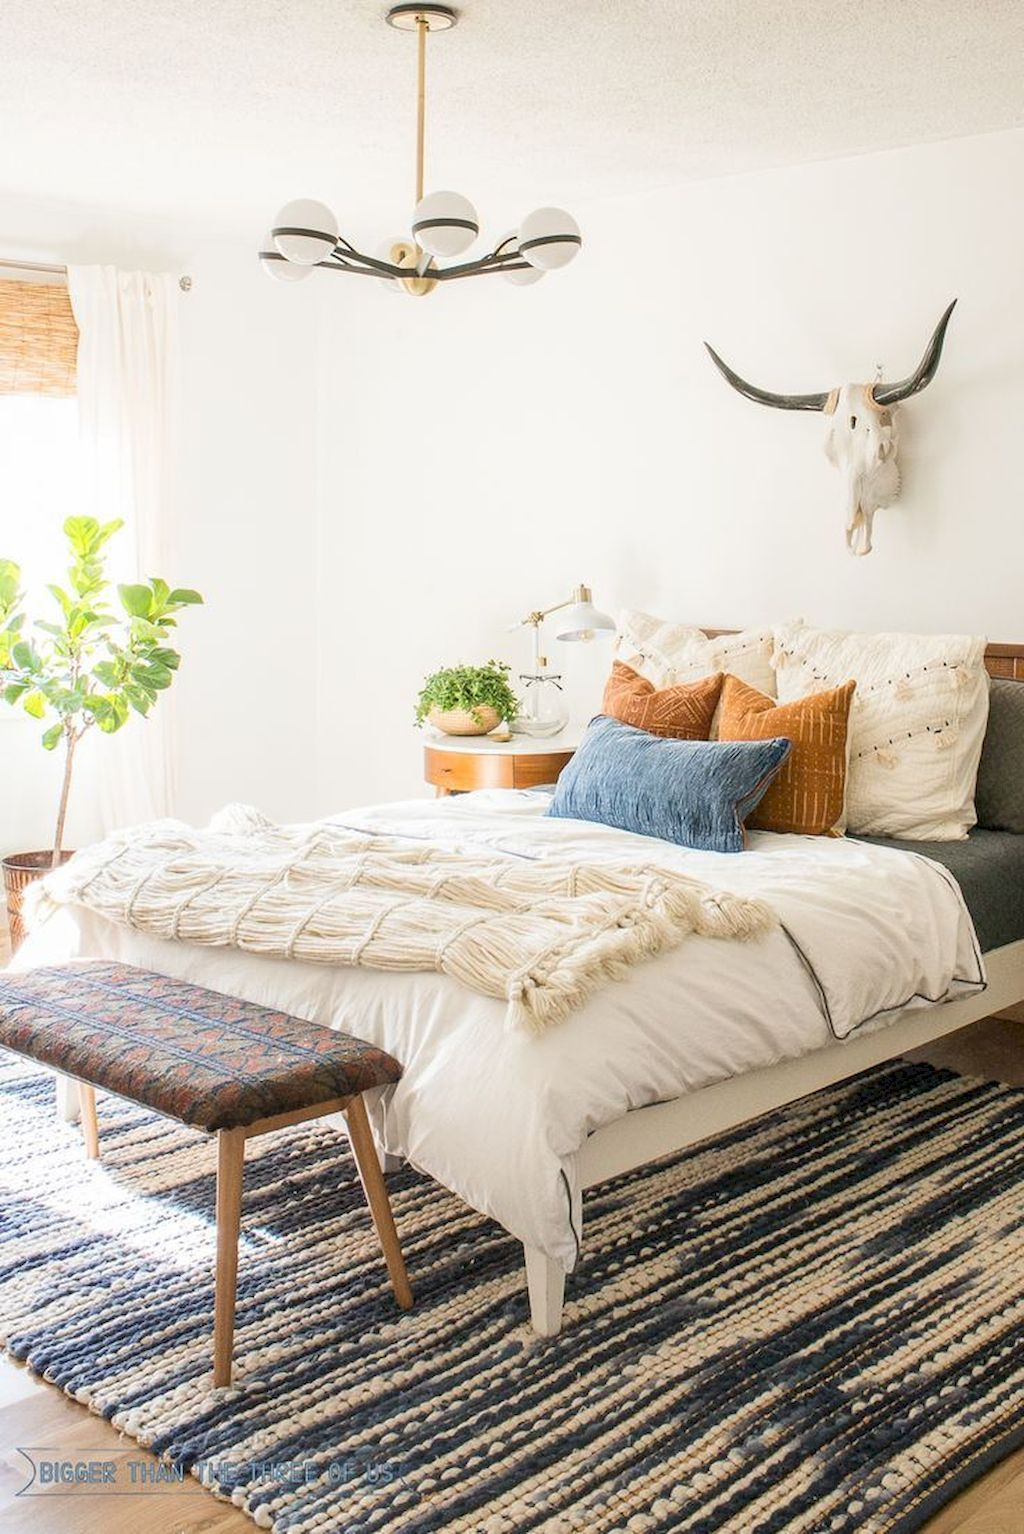 Midcentury modern home decor Let's get inspired by the